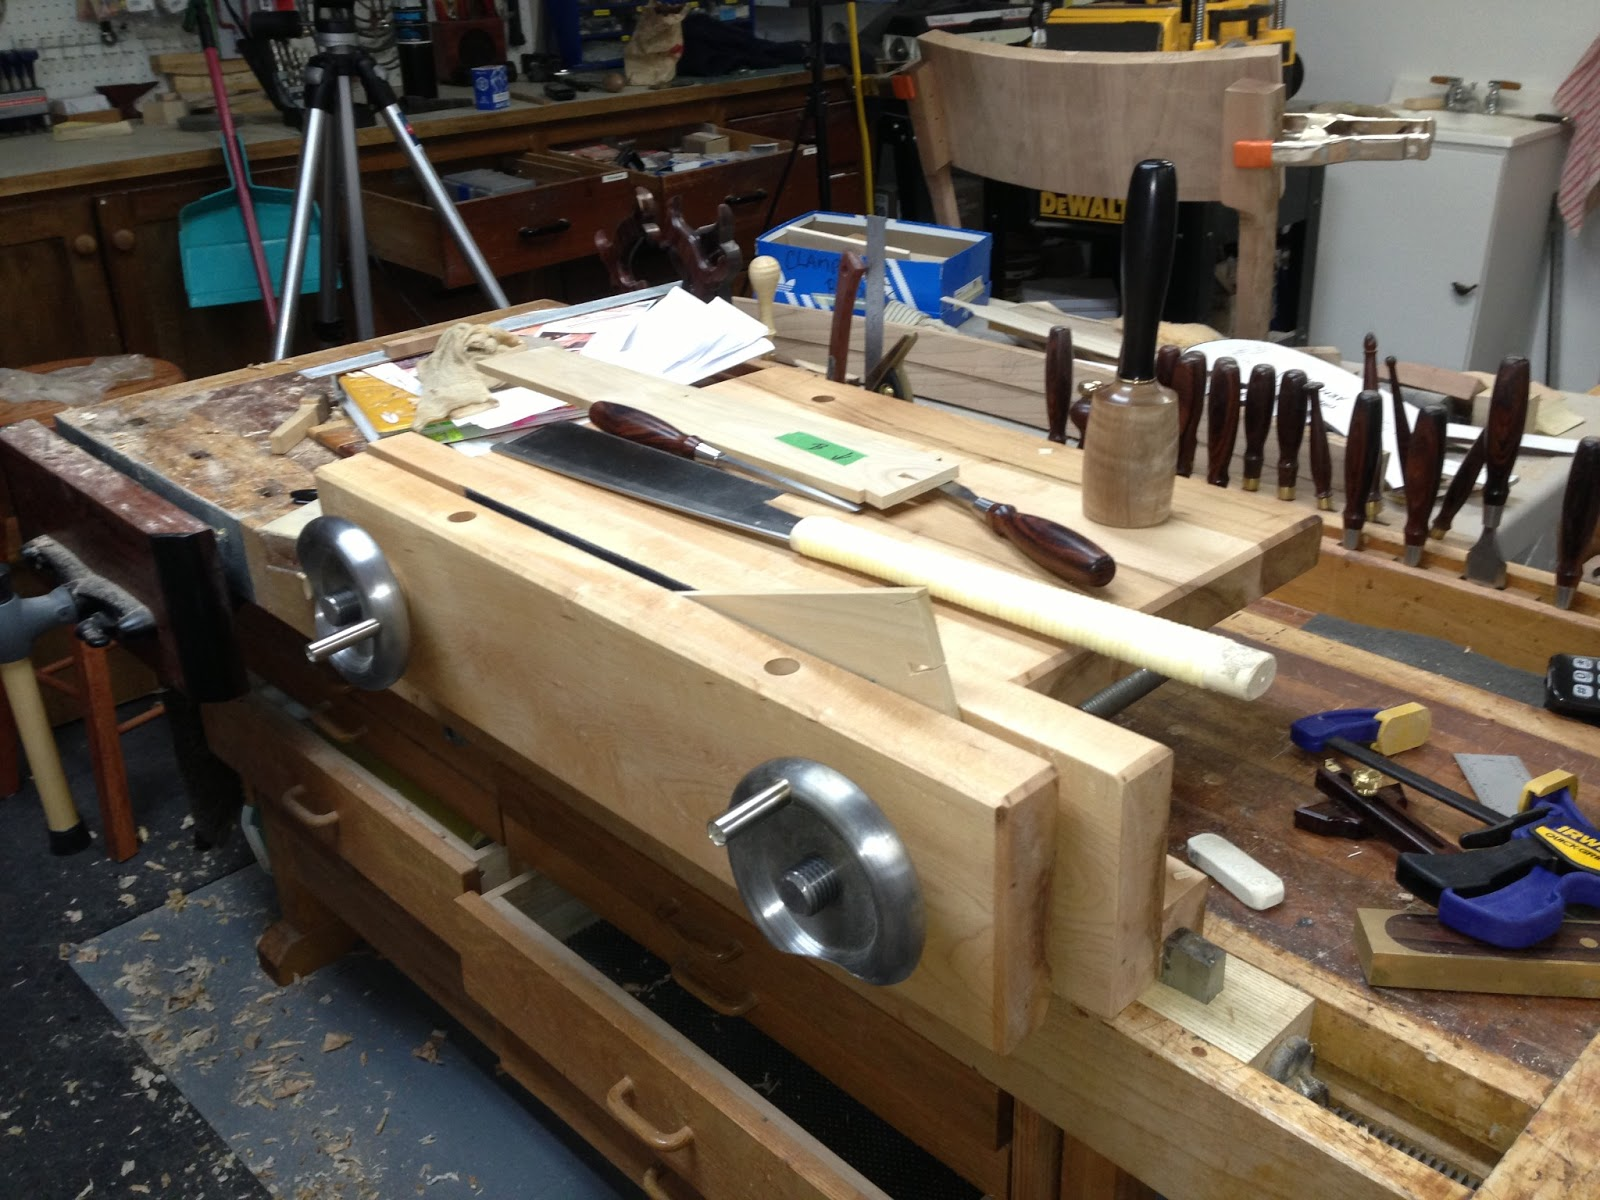 Rich's Woodcraft: Hand Tool Bench-on-Bench (aka Moxon Vise)